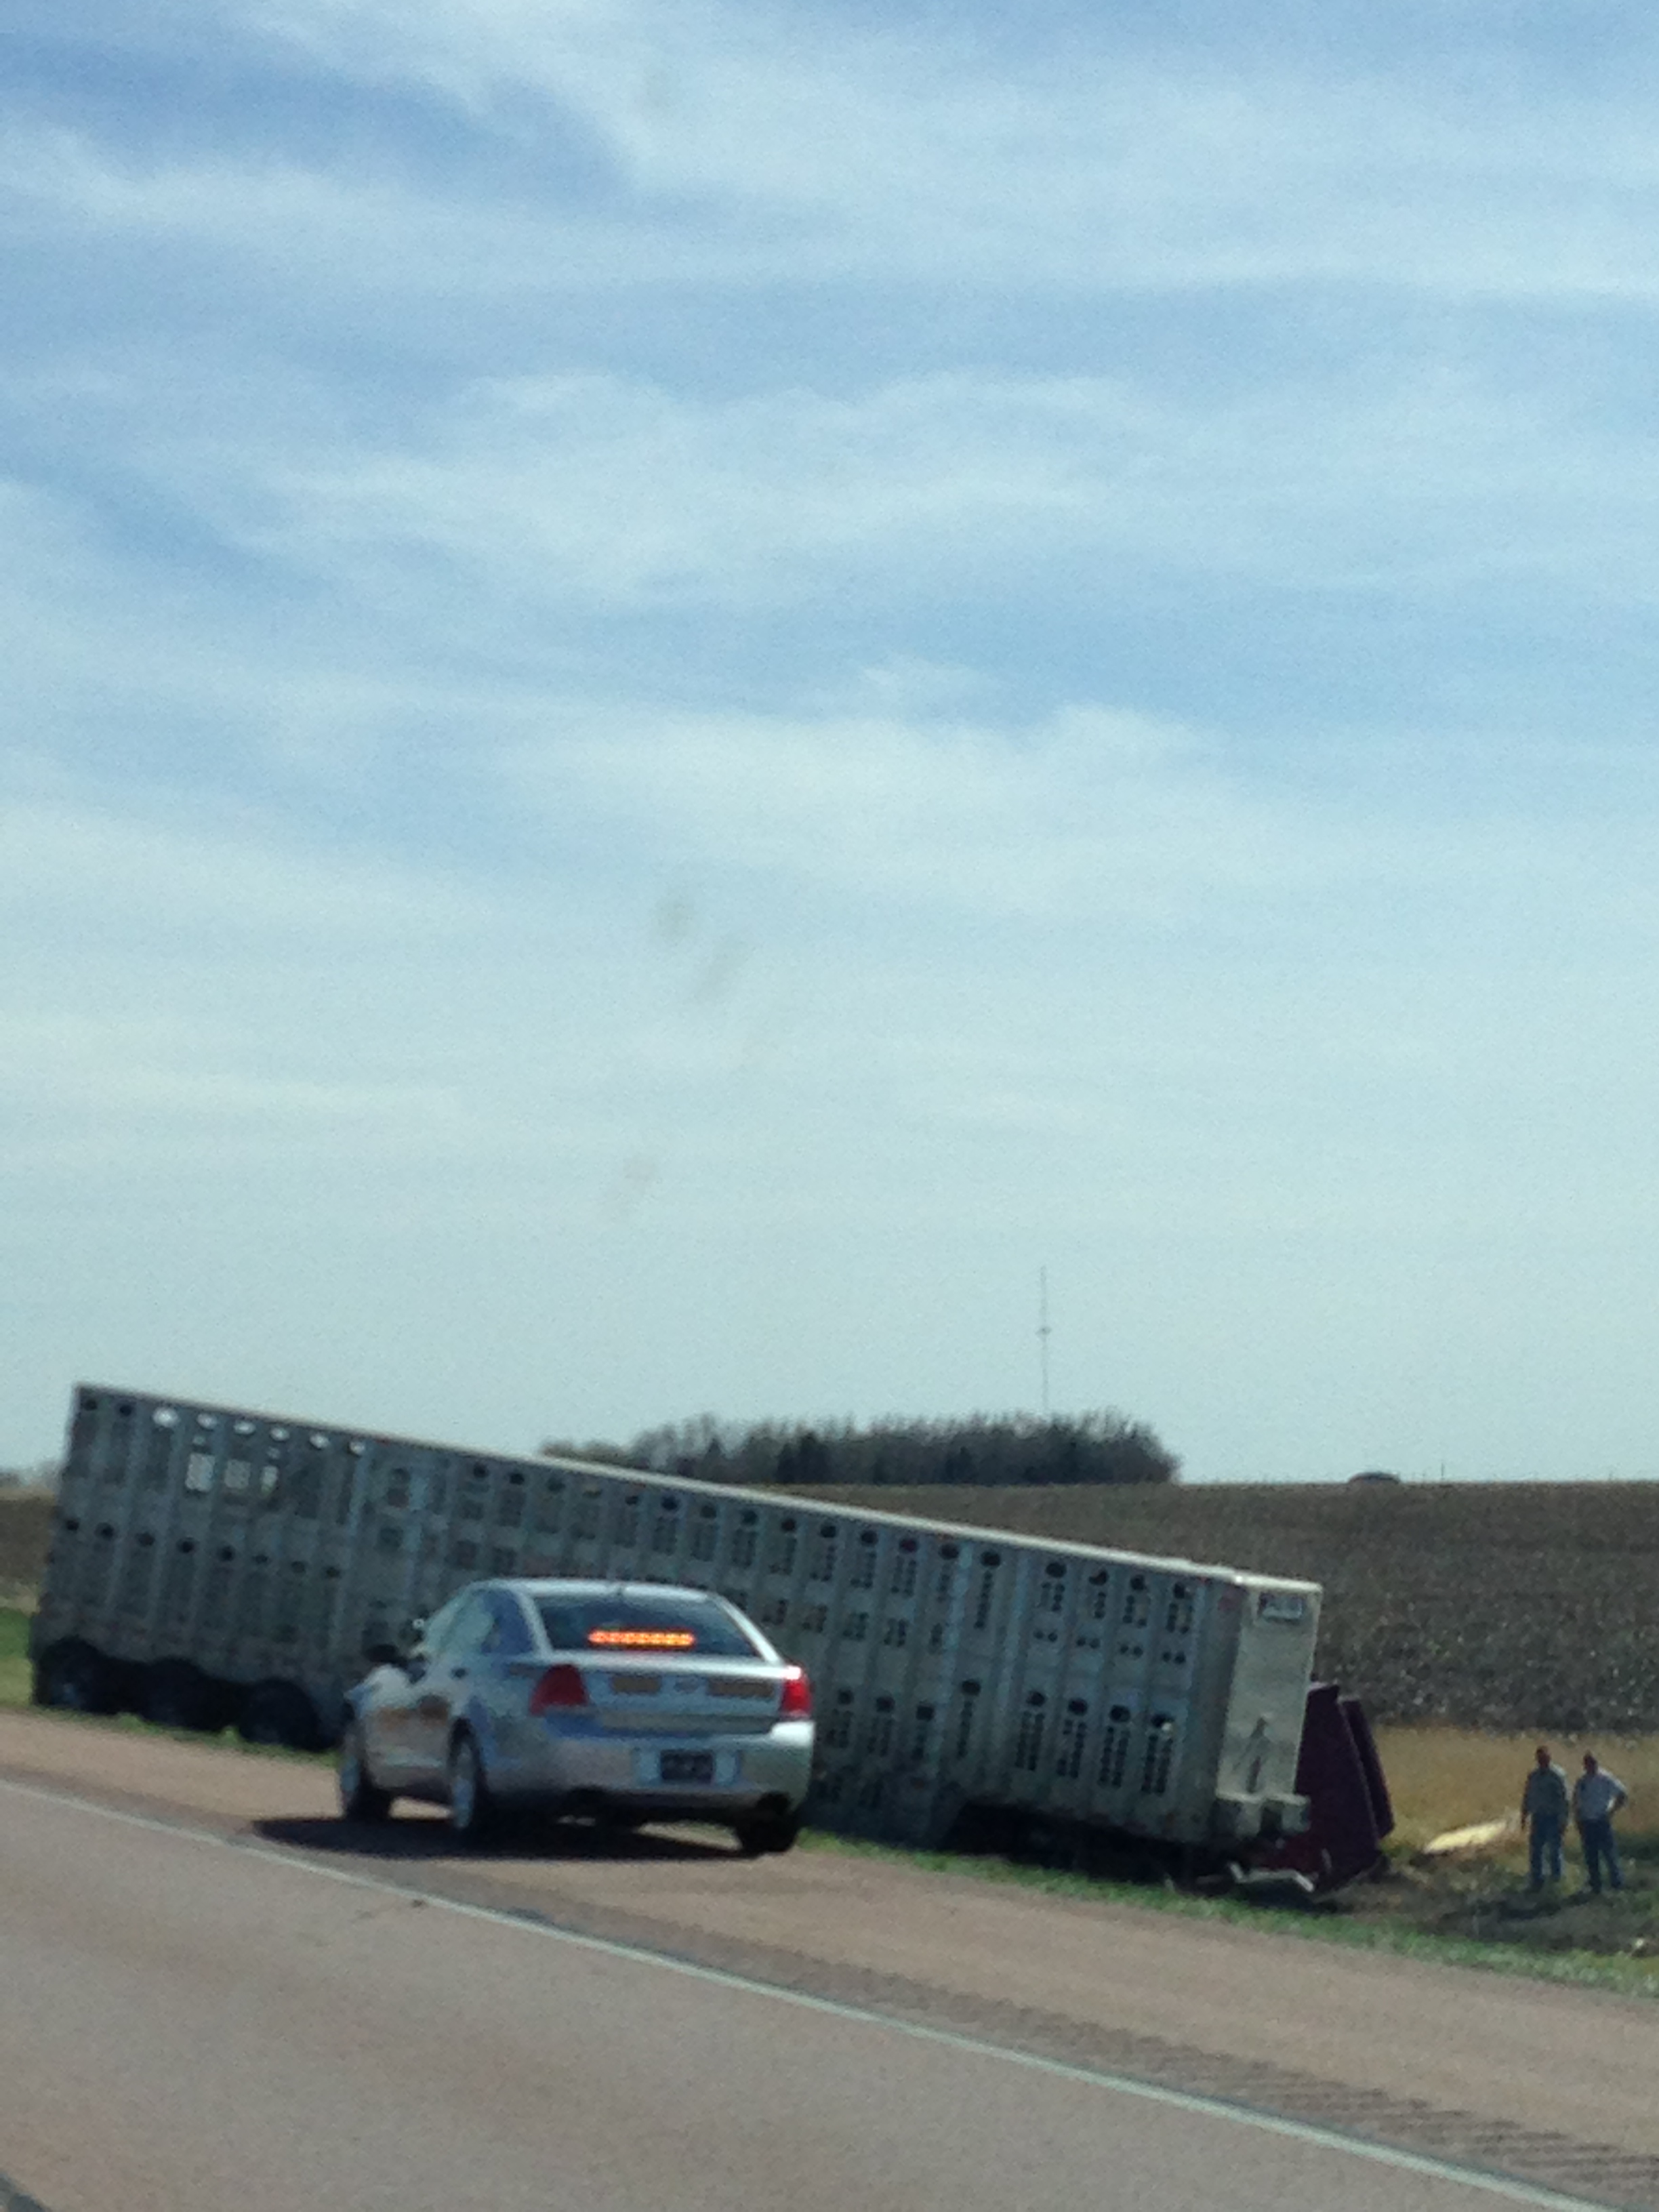 While we were still in South Dakota we passed this terrible scene of a big truck totally rolled over on the side of the road.